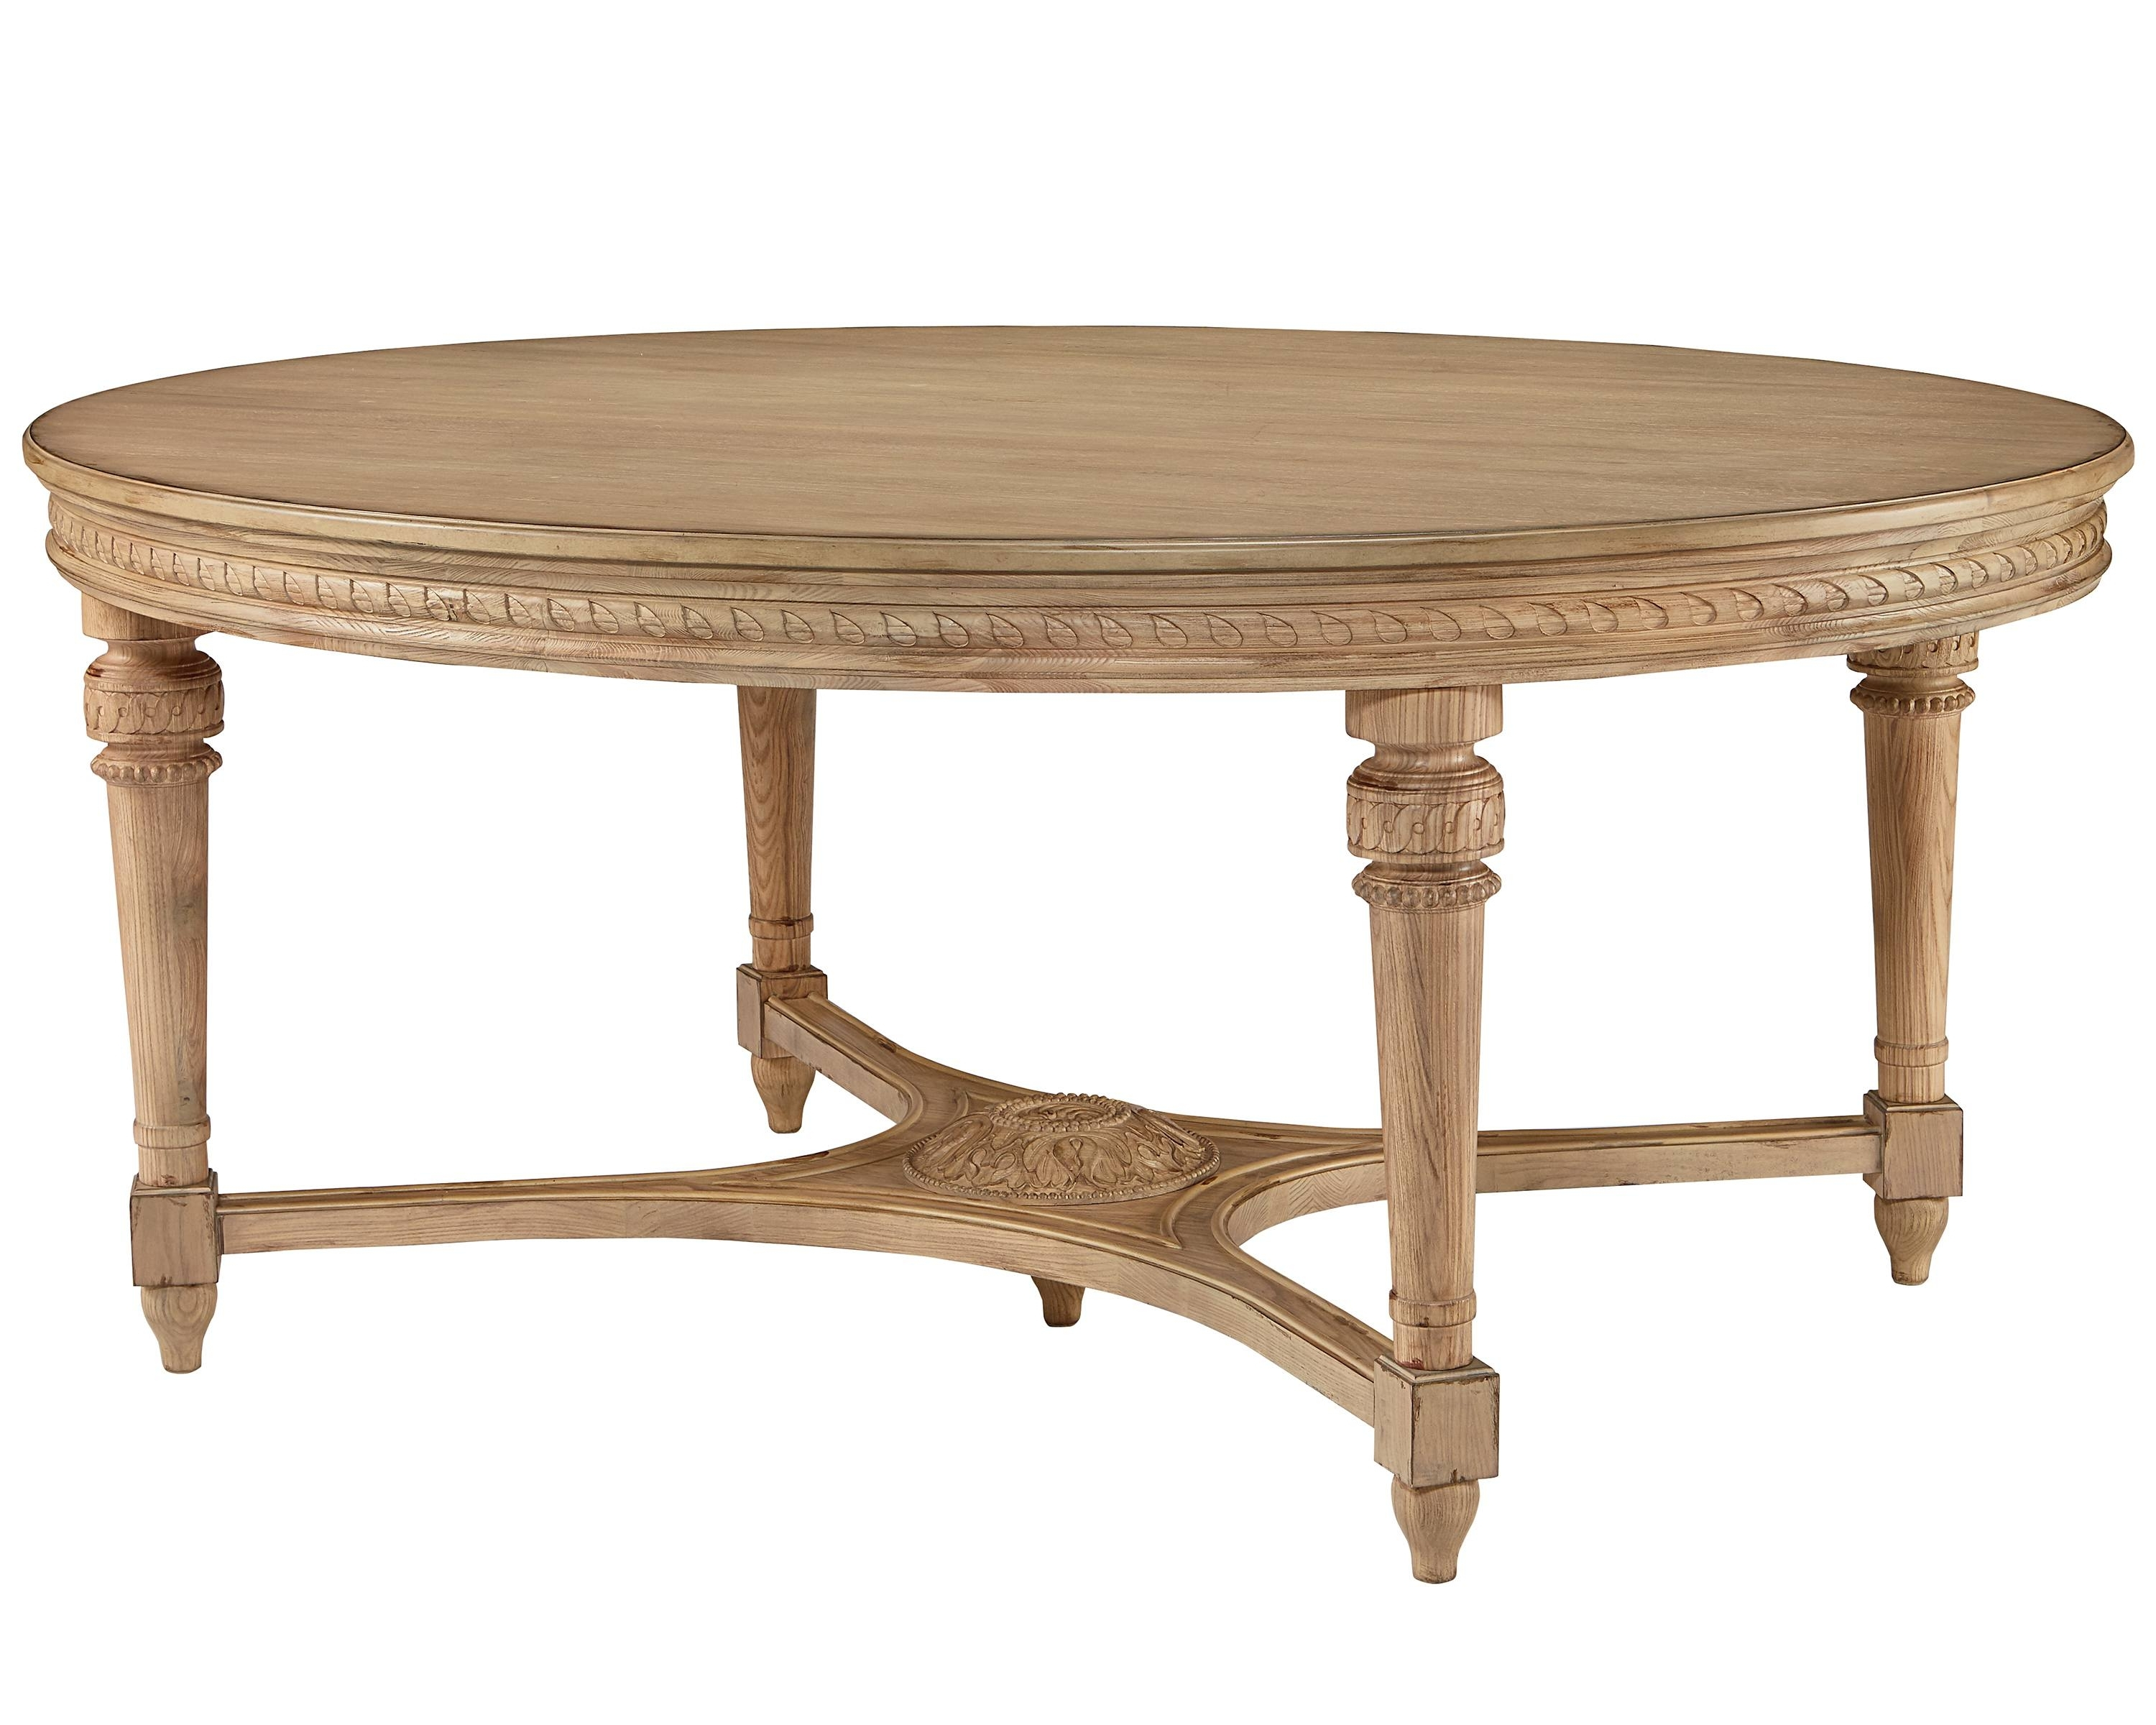 Magnolia Home English Country Oval Dining Tables Regarding Preferred English Country Oval Dining Table – Magnolia Home (View 4 of 25)